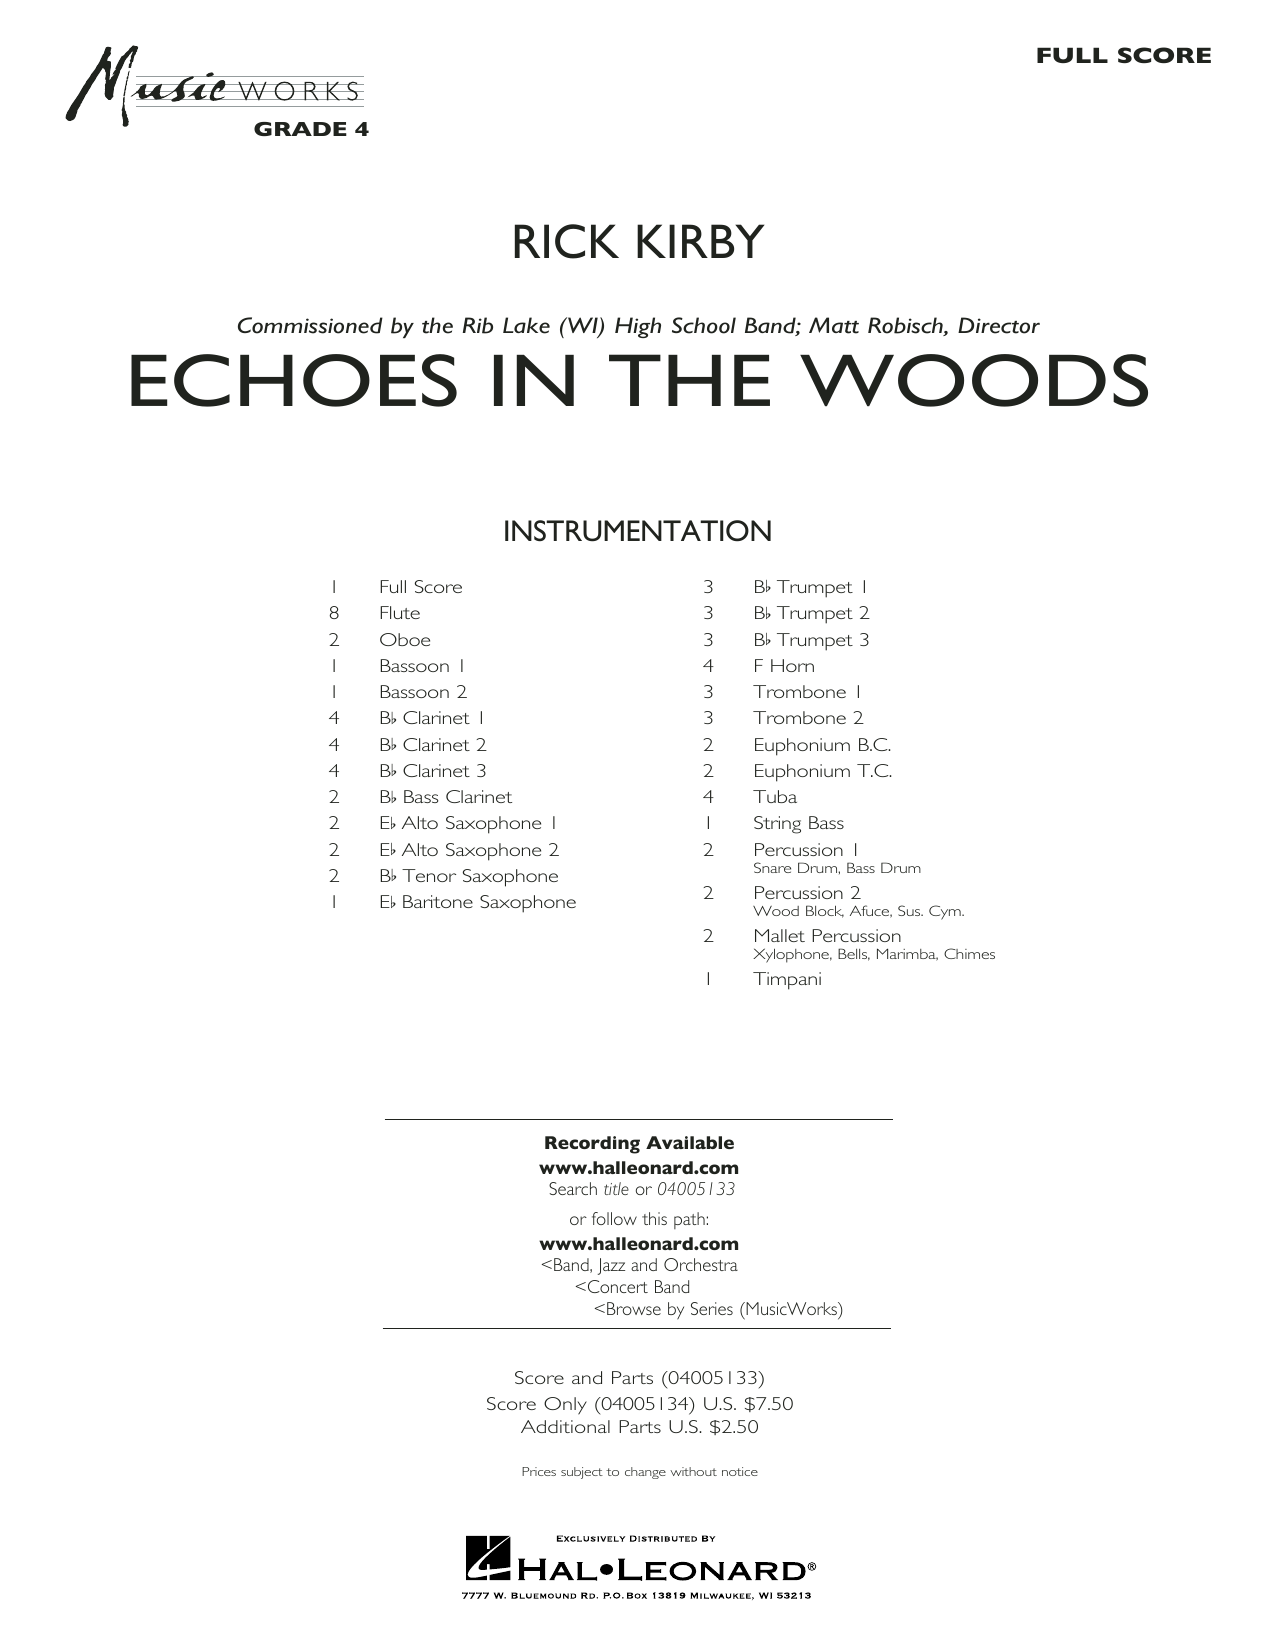 Rick Kirby Echoes in the Woods - Conductor Score (Full Score) sheet music notes and chords. Download Printable PDF.